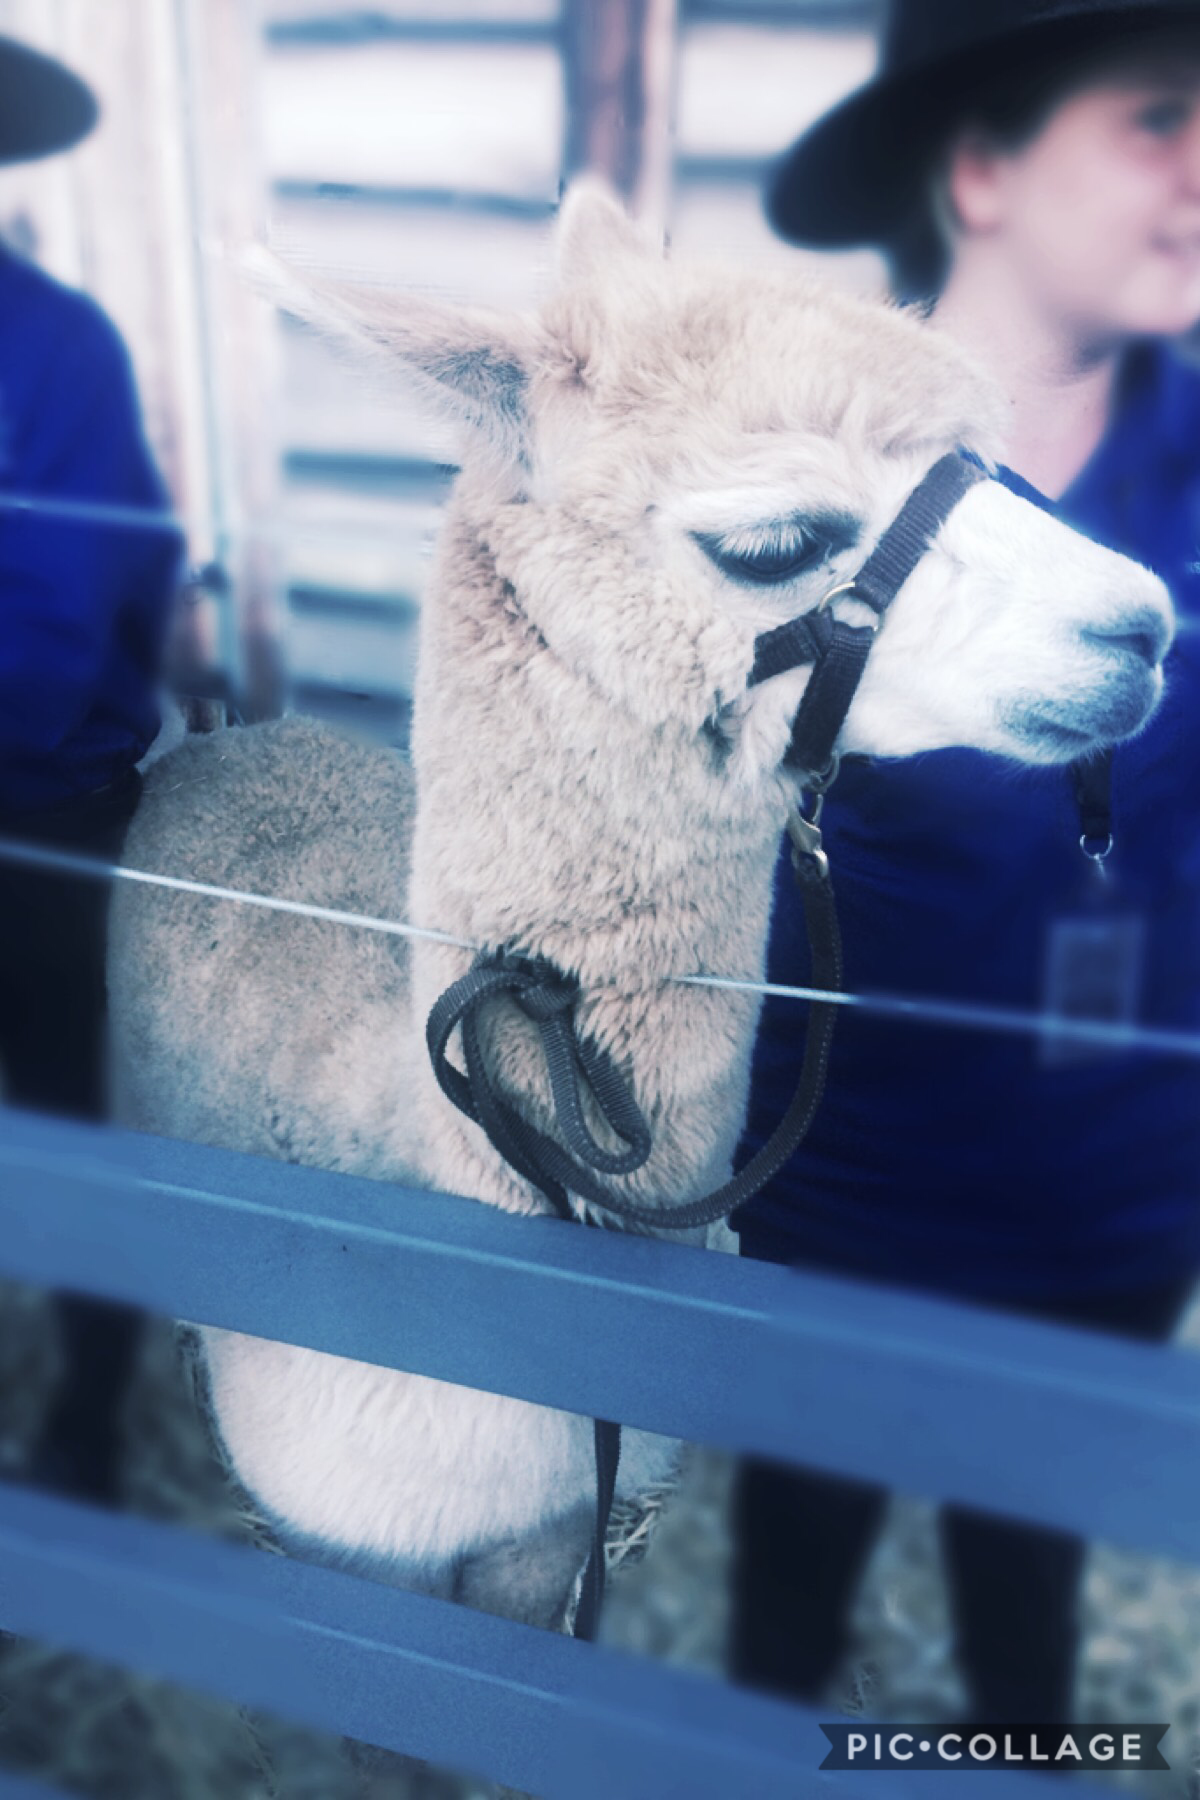 #17 Whoa y'all I met an alpaca! It was amazing! And luckily it didn't spit at me 😂 if you don't like alpacas, I don't know what is wrong with you...  jkkkk